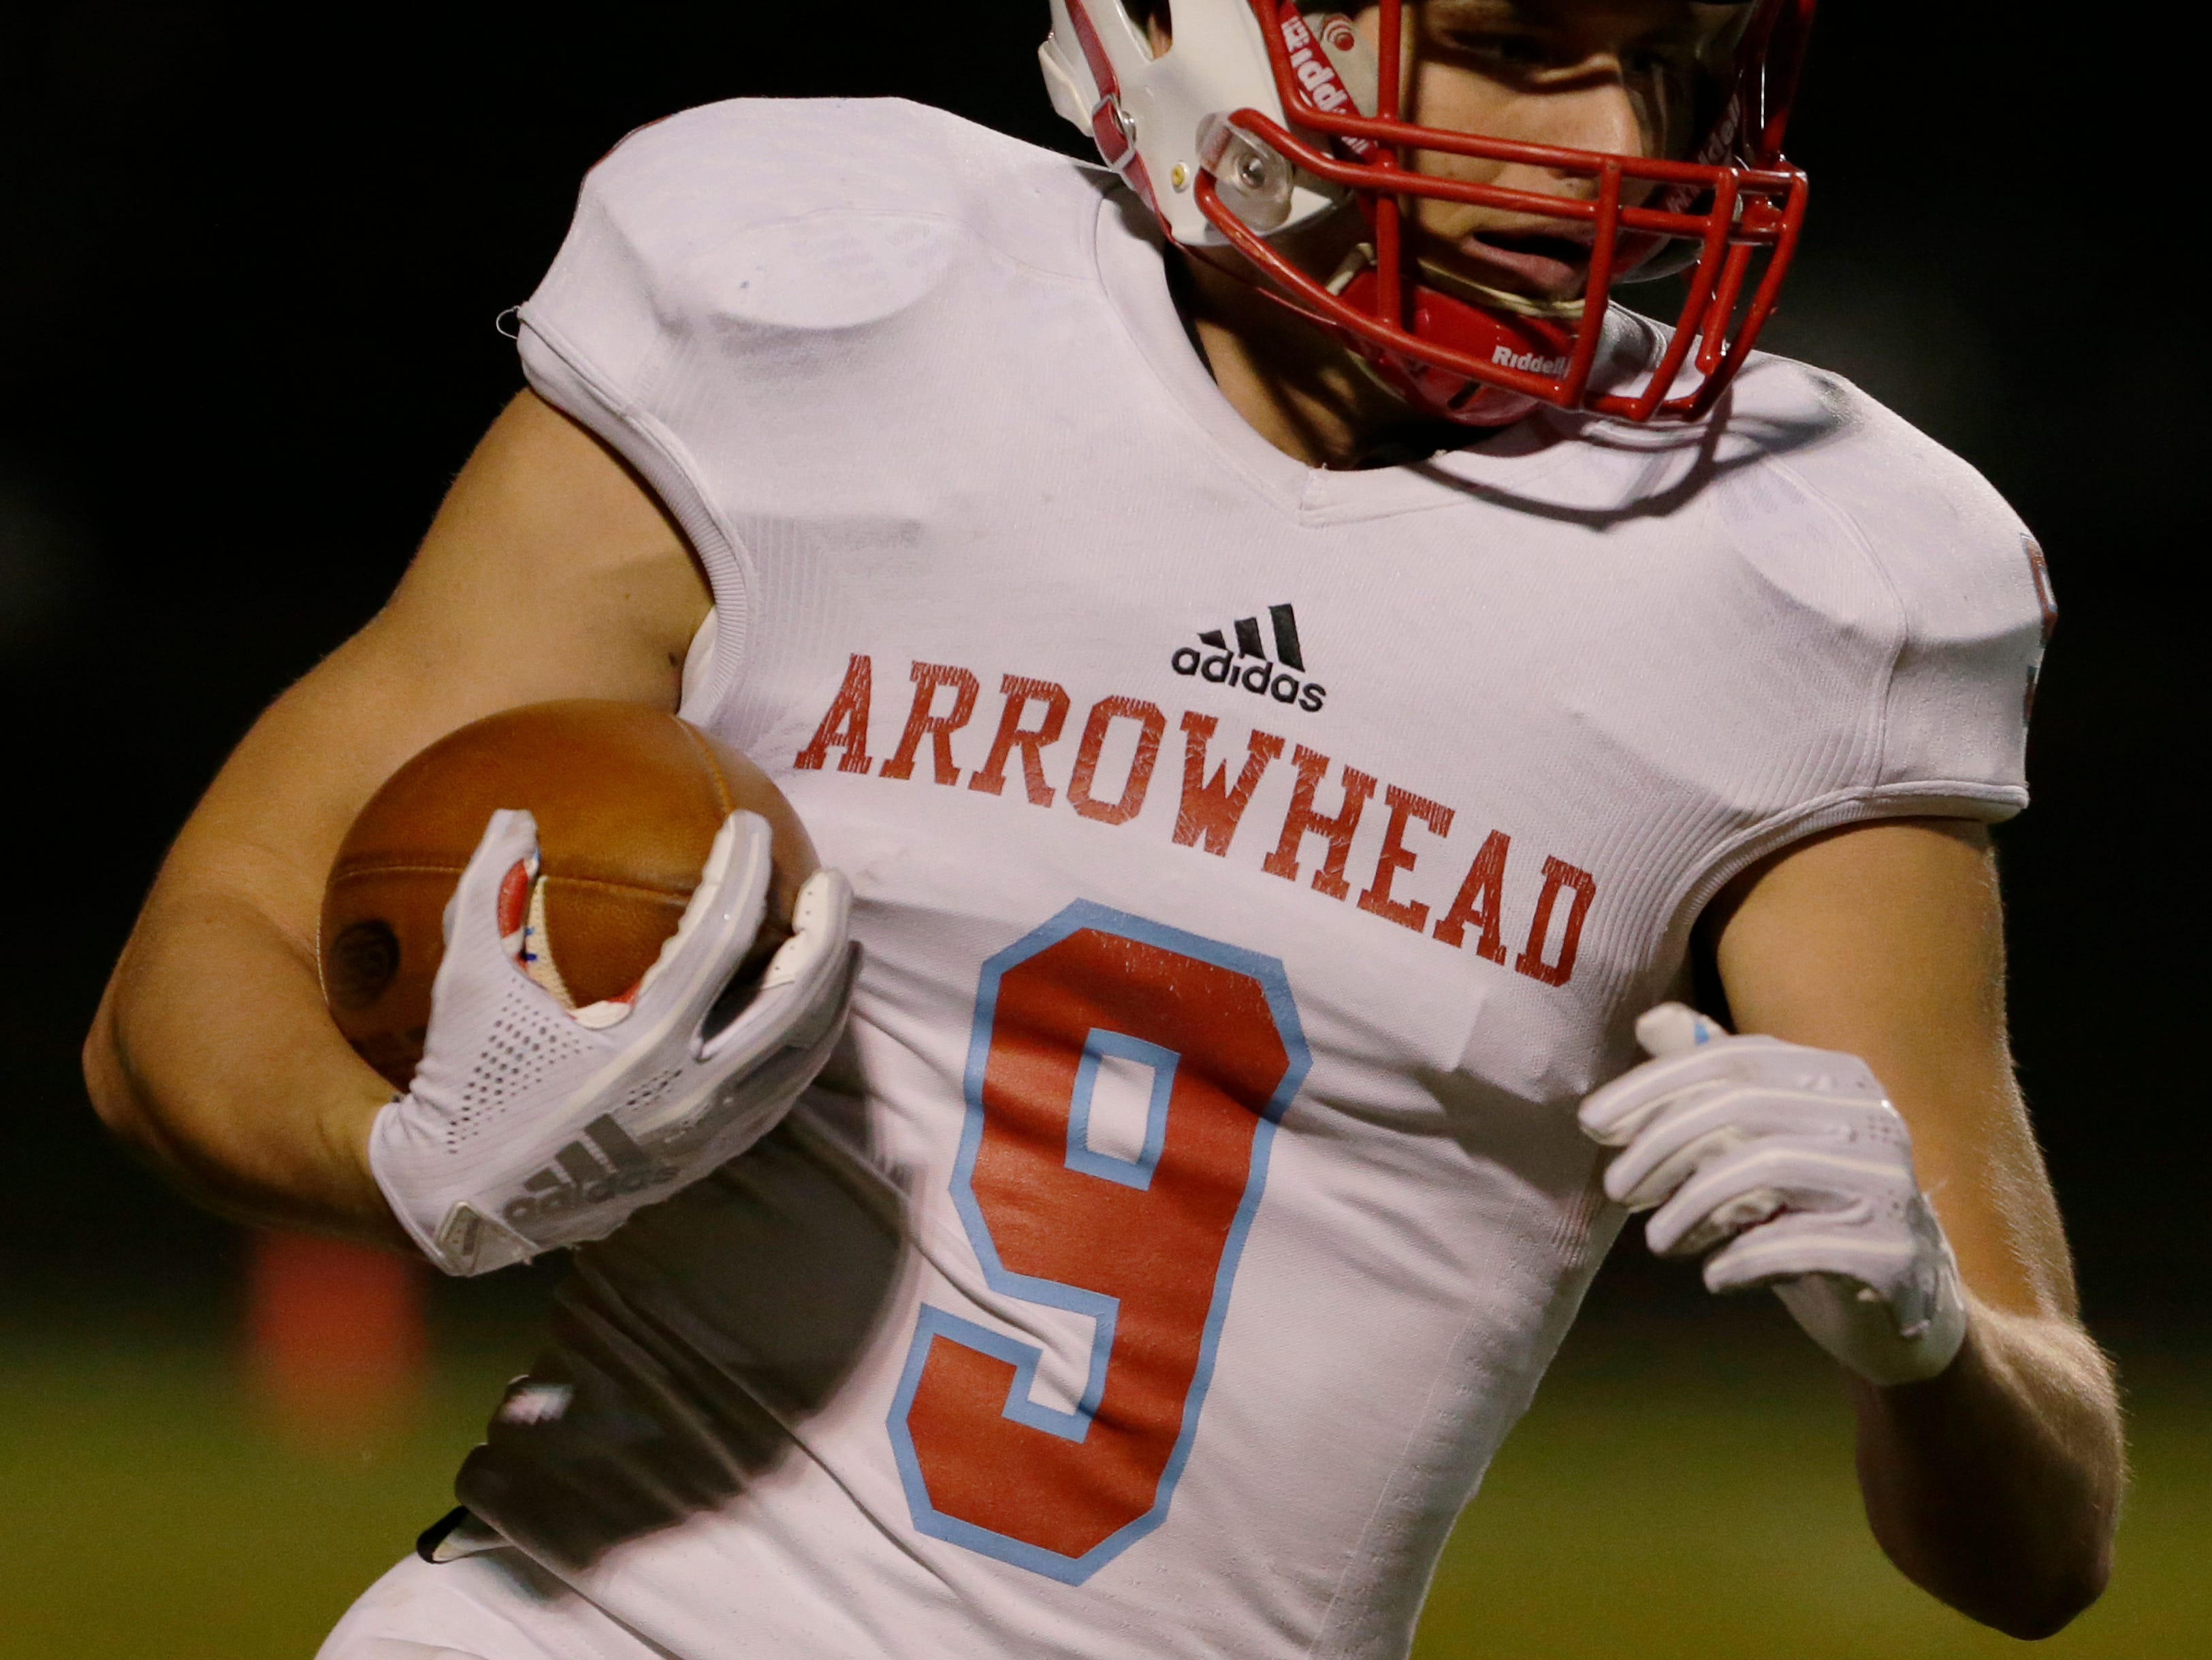 Arrowhead's Robbie Symdon returns a punt for the Warhawks.  Fond du Lac Cardinals played Arrowhead Warhawks in WIAA football playoff sectionals, Friday, Oct. 26, 2018, at Fruth Field in Fond du Lac.  Fond du Lac won 28 - 22.Joe Sienkiewicz/USA Today NETWORK-Wisconsin